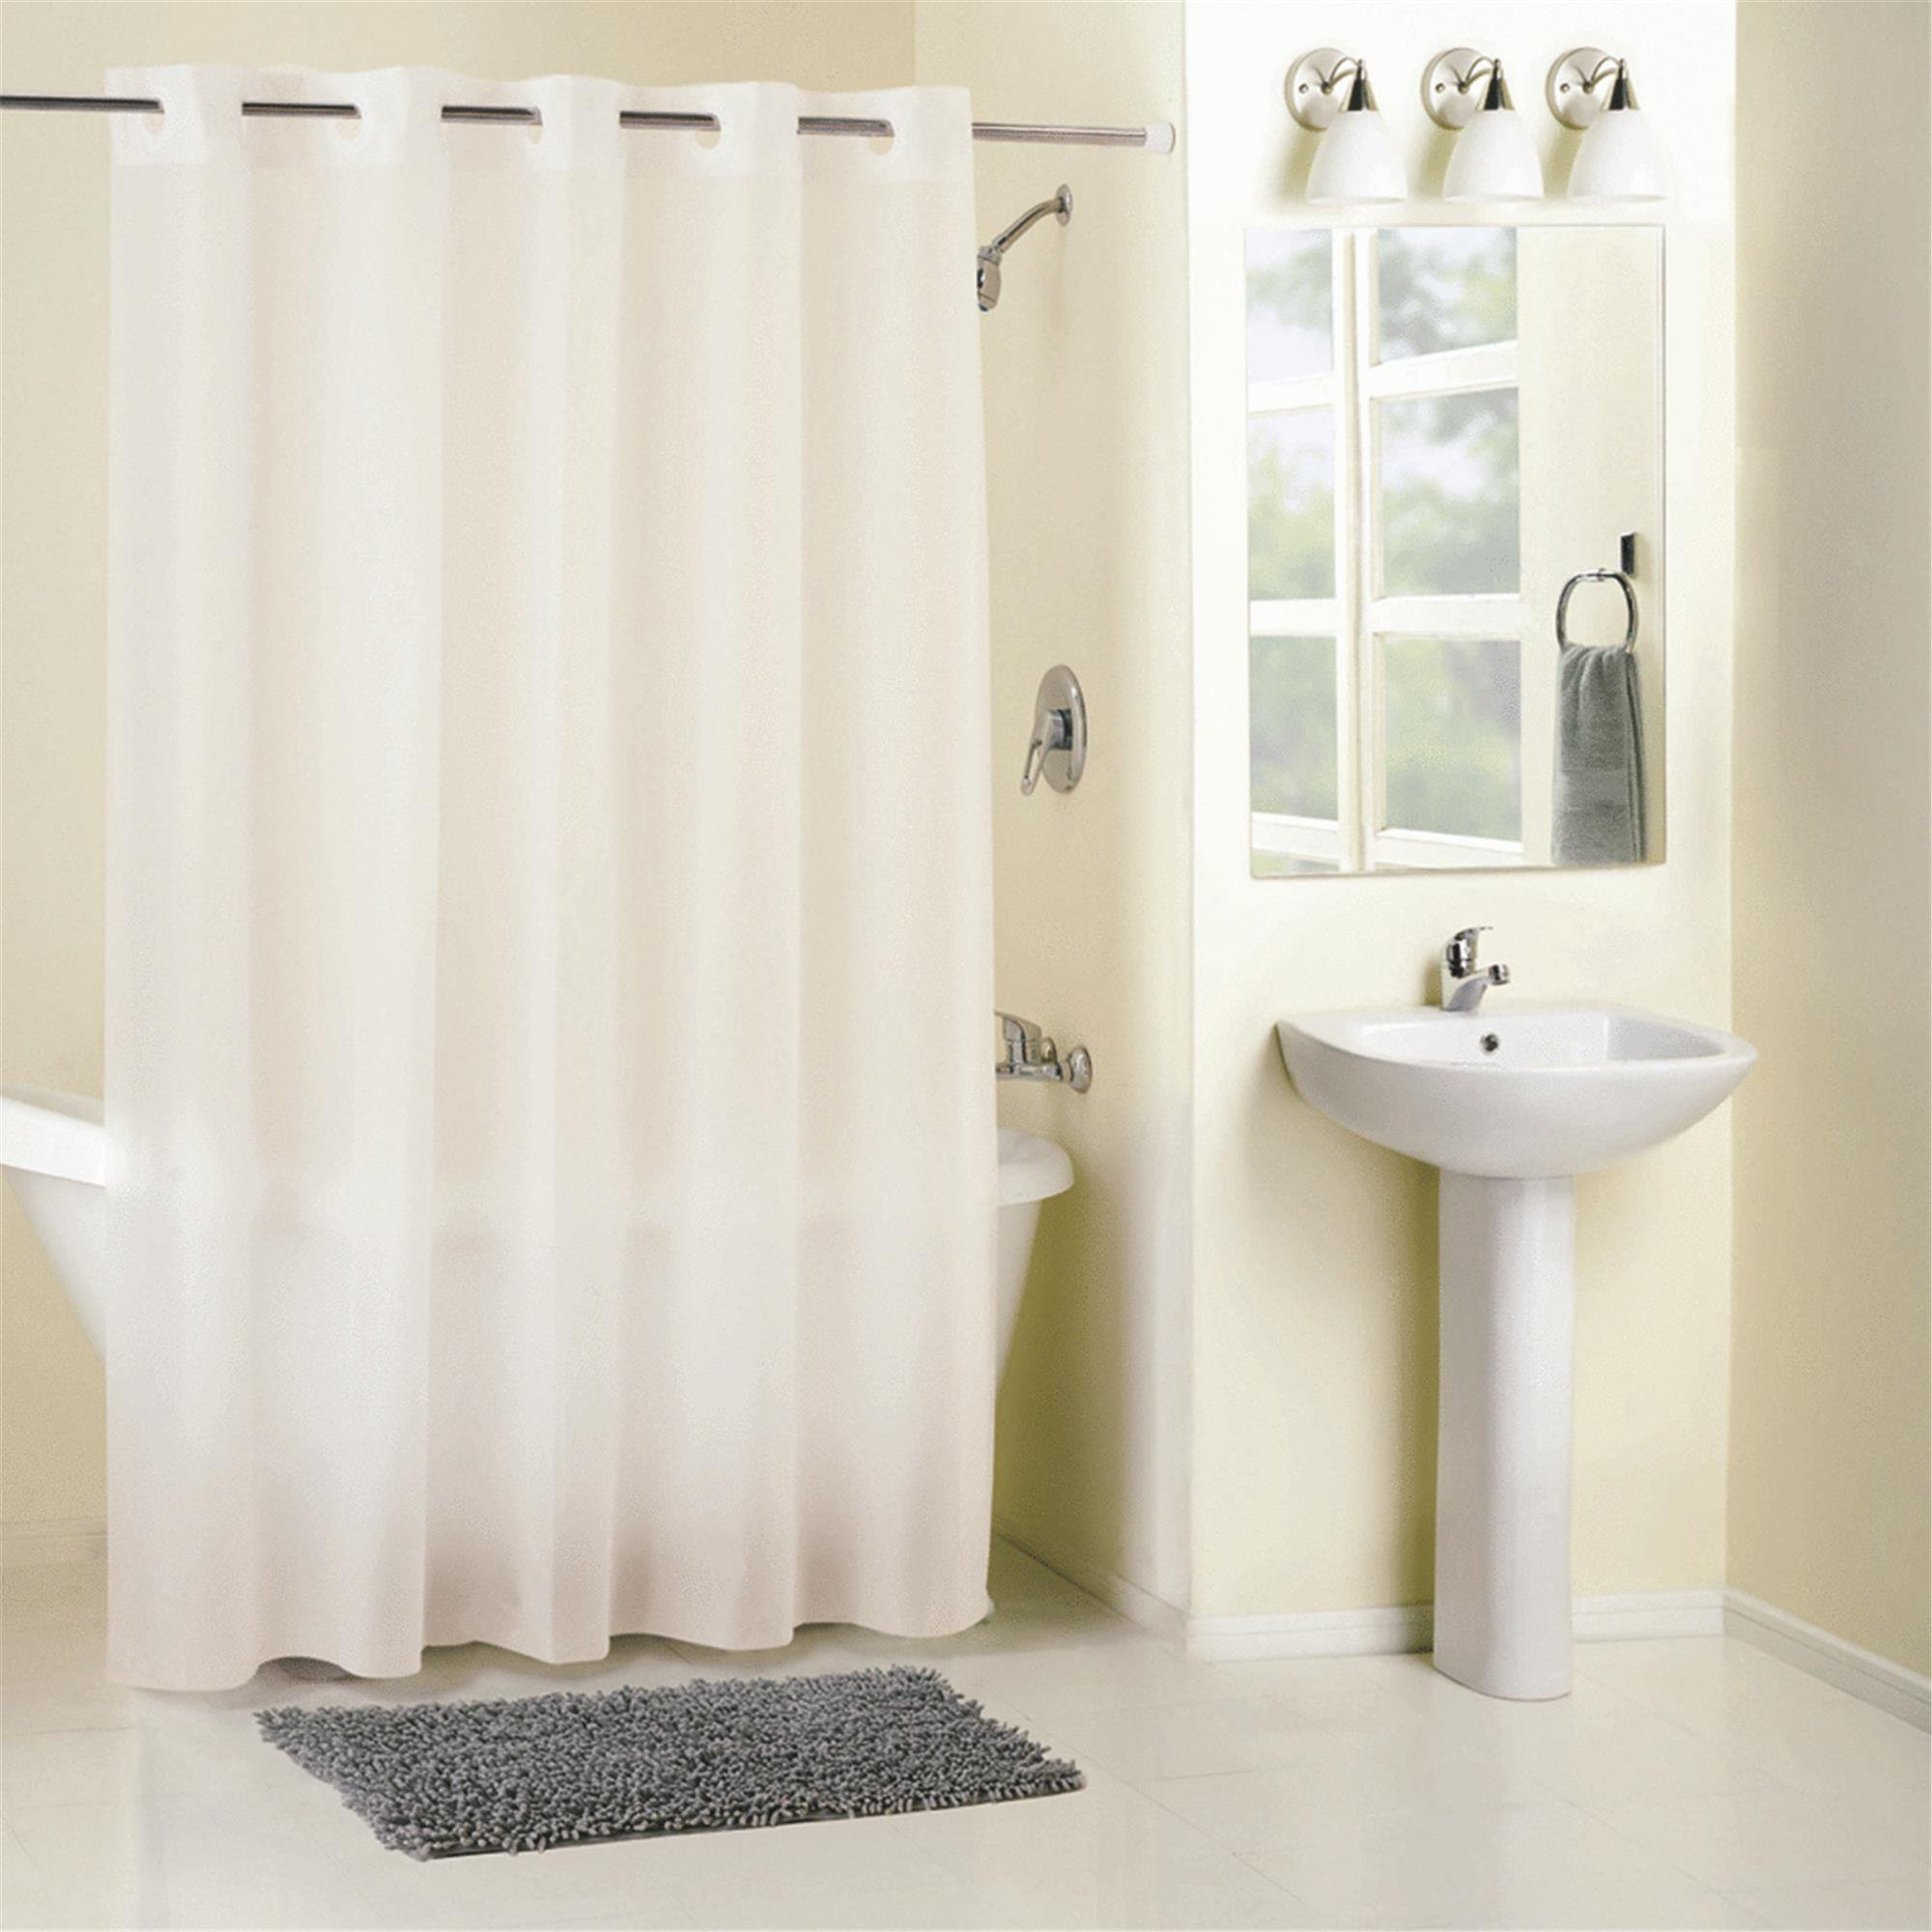 Hookless Shower Curtain With Liner